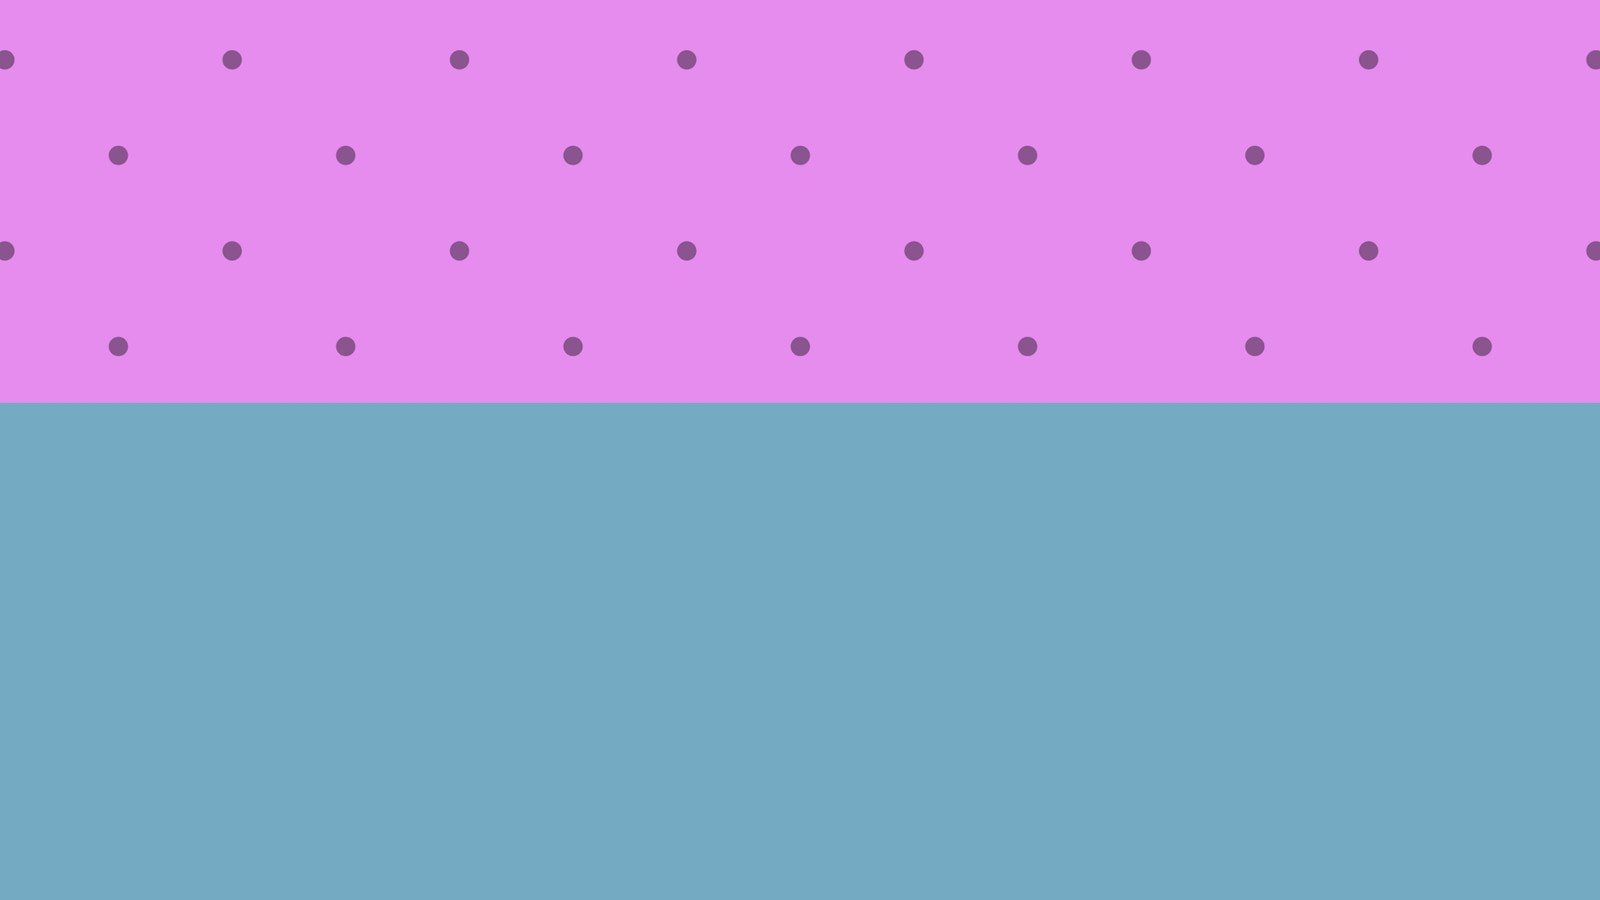 Pink Blue Dots Margarita Night Facebook Event Cover